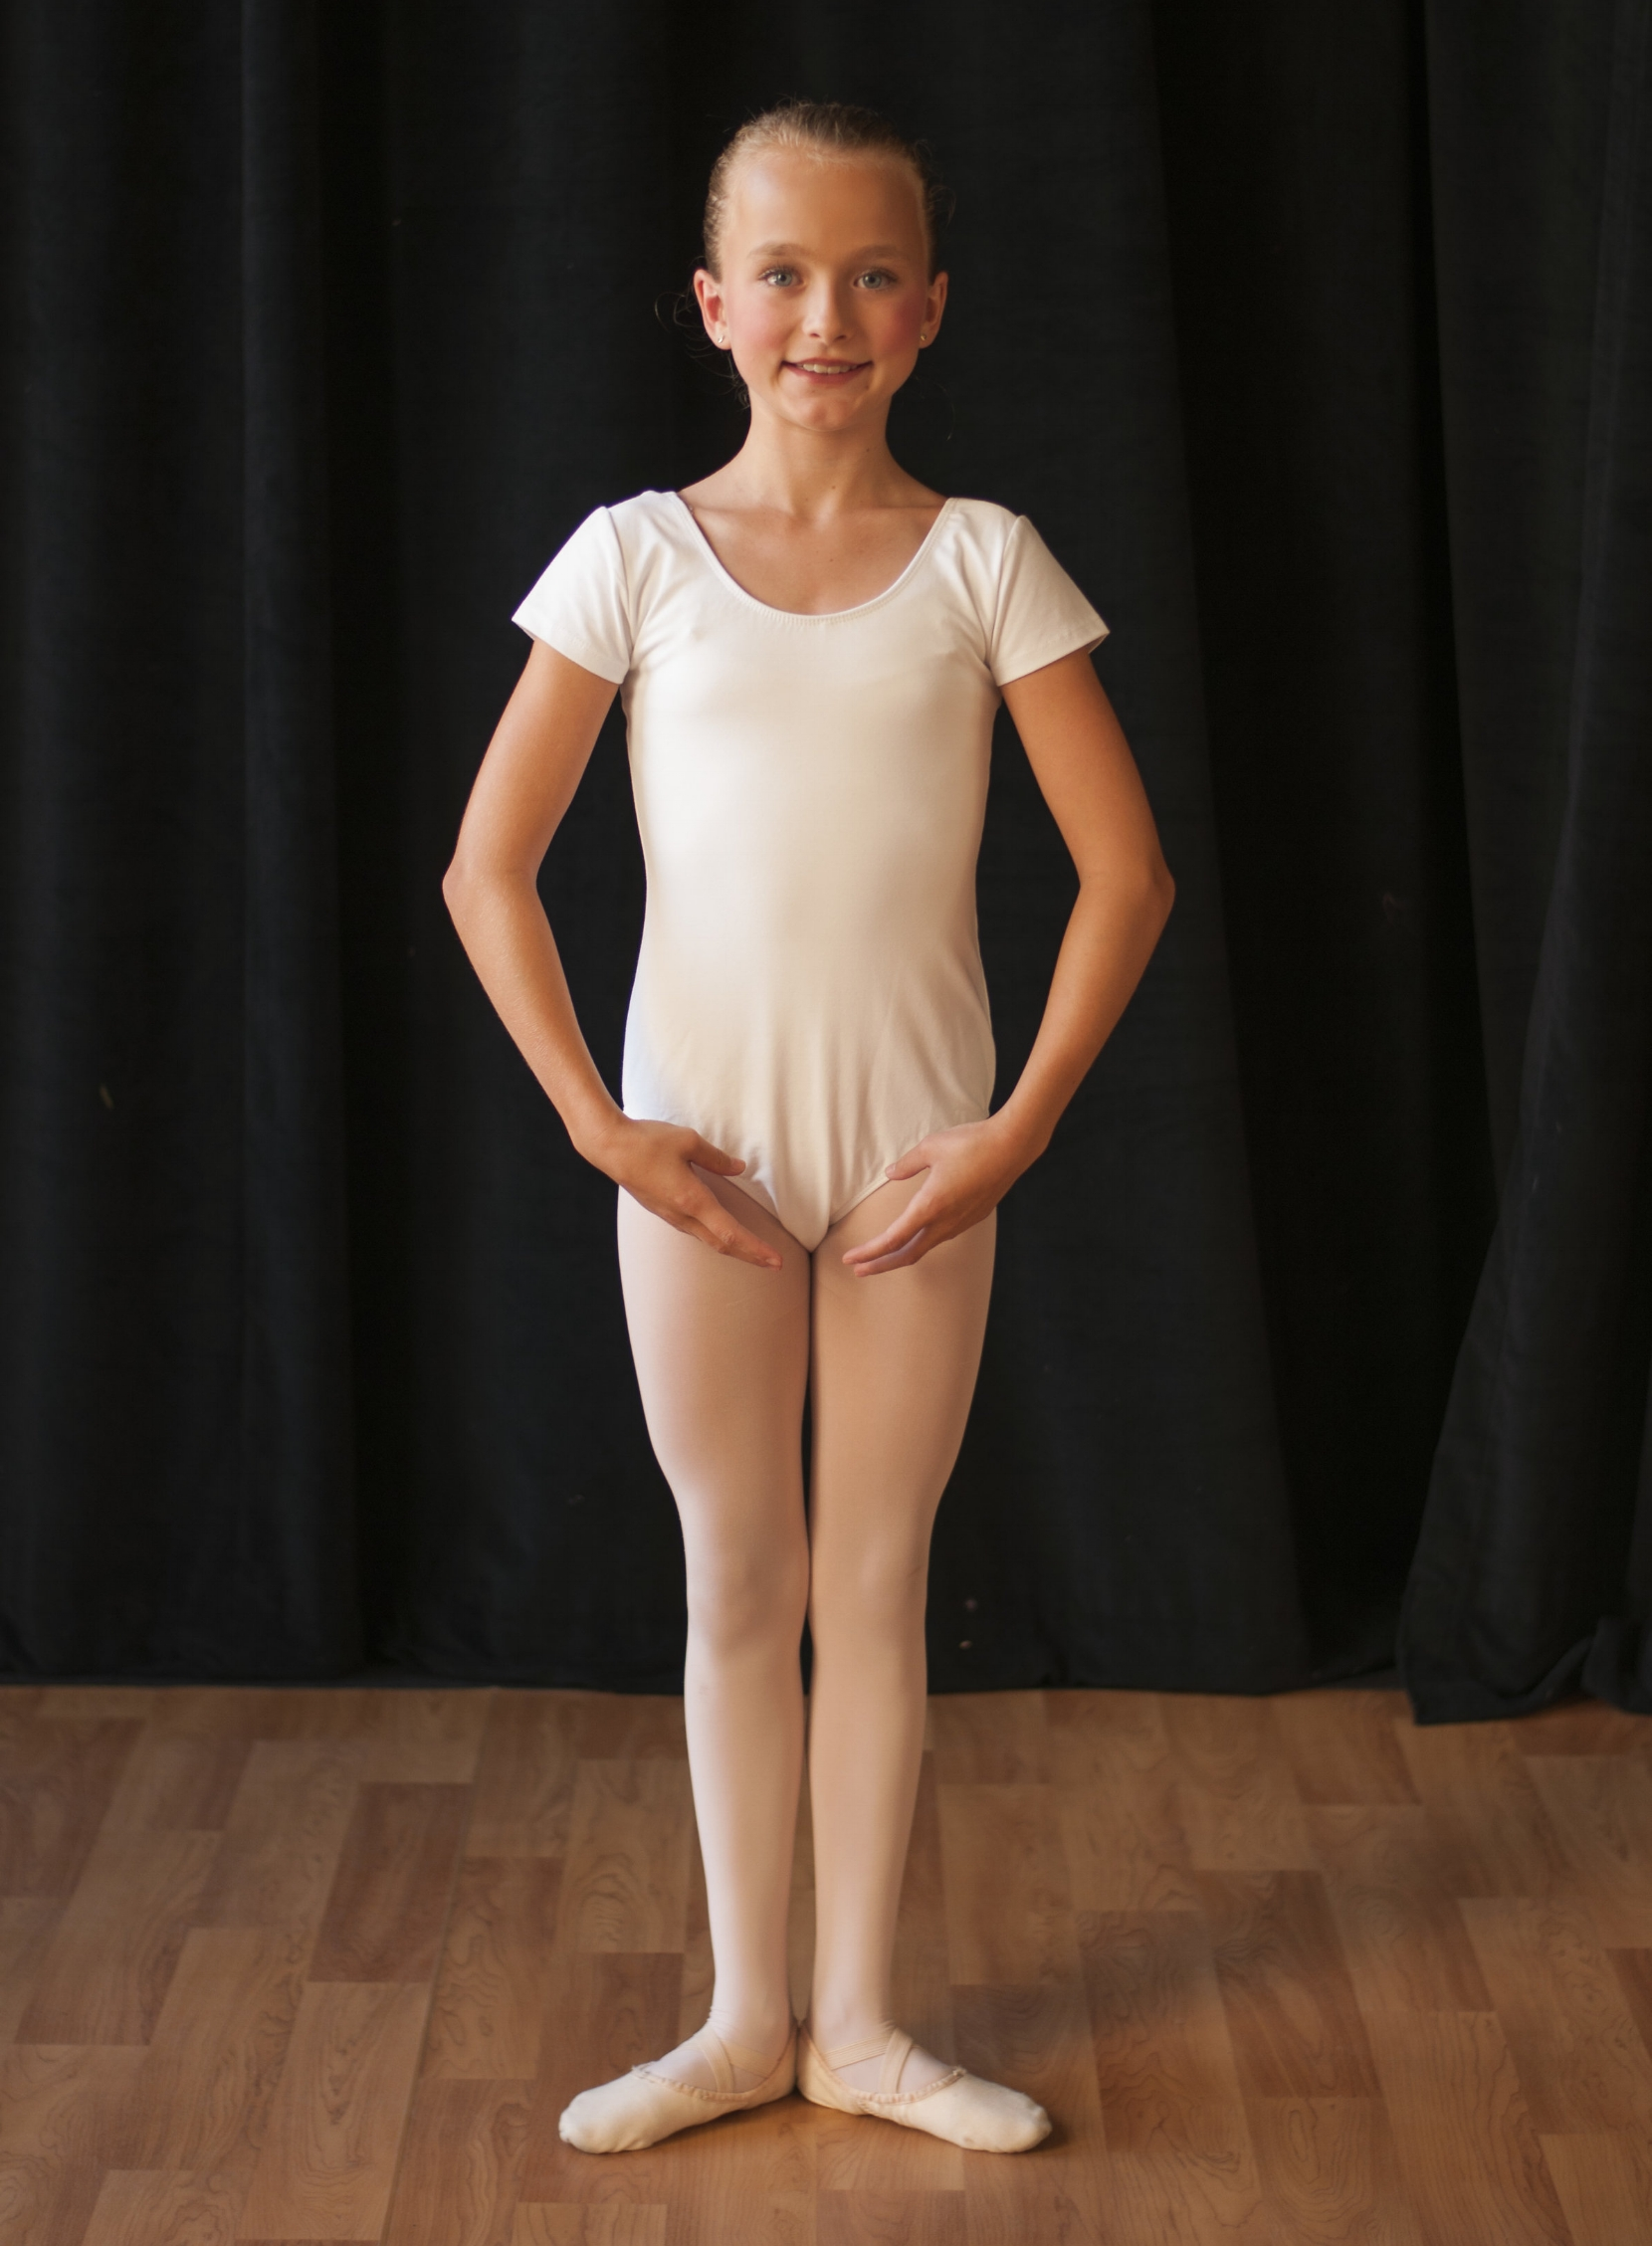 Leap 'n learn 3 & Leap 'n learn 4 - White short or long sleeve leotardPink footed or convertible dance tights (no specific brand required)Pink leather or canvas ballet shoesHair in a ballet bunSkirt, sweater and leg warmers are optional and at the discretion of the teacher